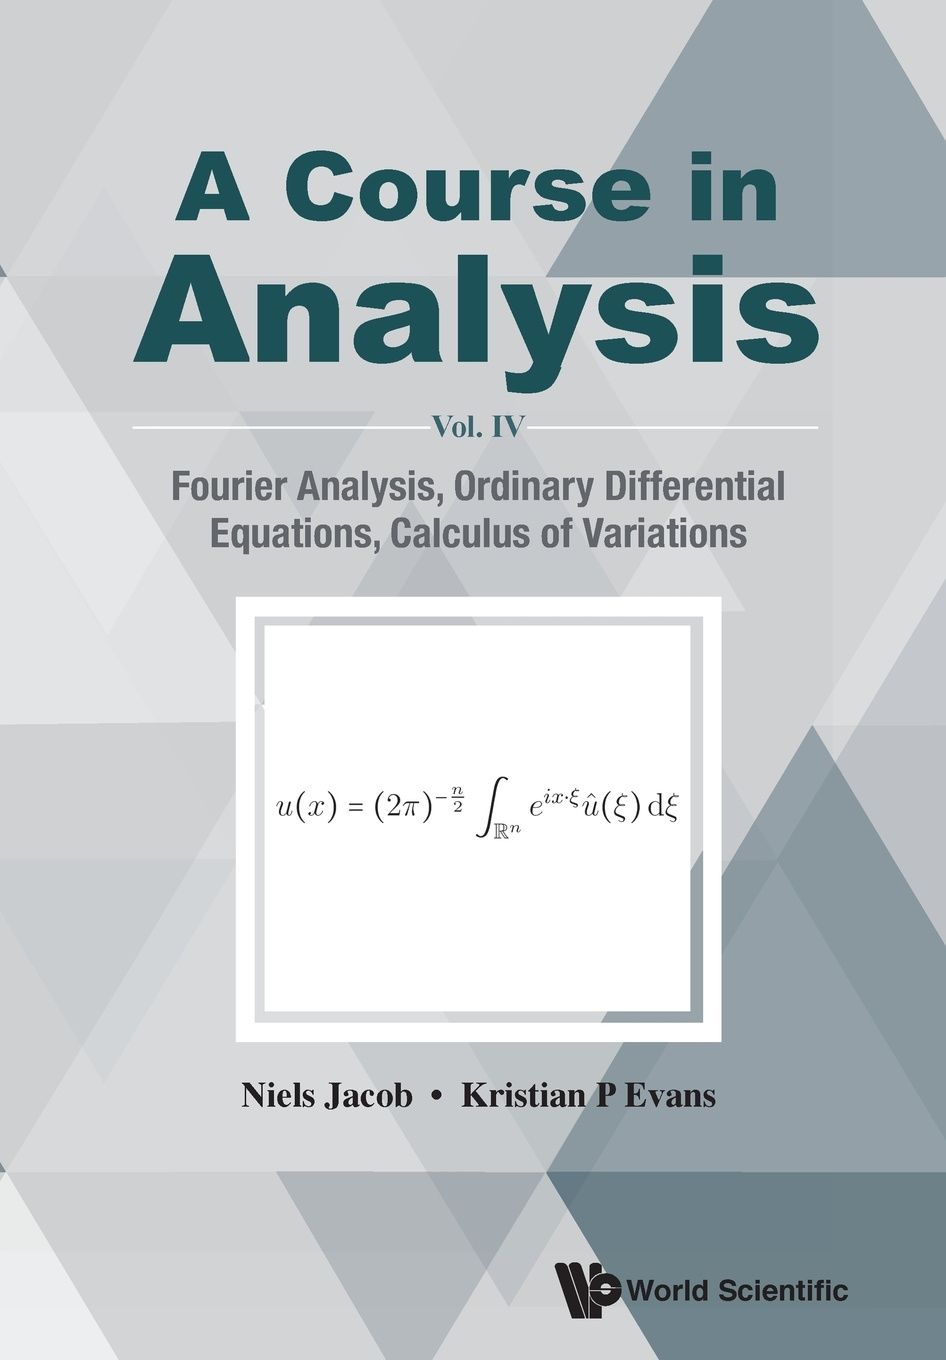 Niels Jacob, Kristian P Evans A Course in Analysis. Vol. IV: Fourier Analysis, Ordinary Differential Equations, Calculus of Variations daniel arrigo j symmetry analysis of differential equations an introduction